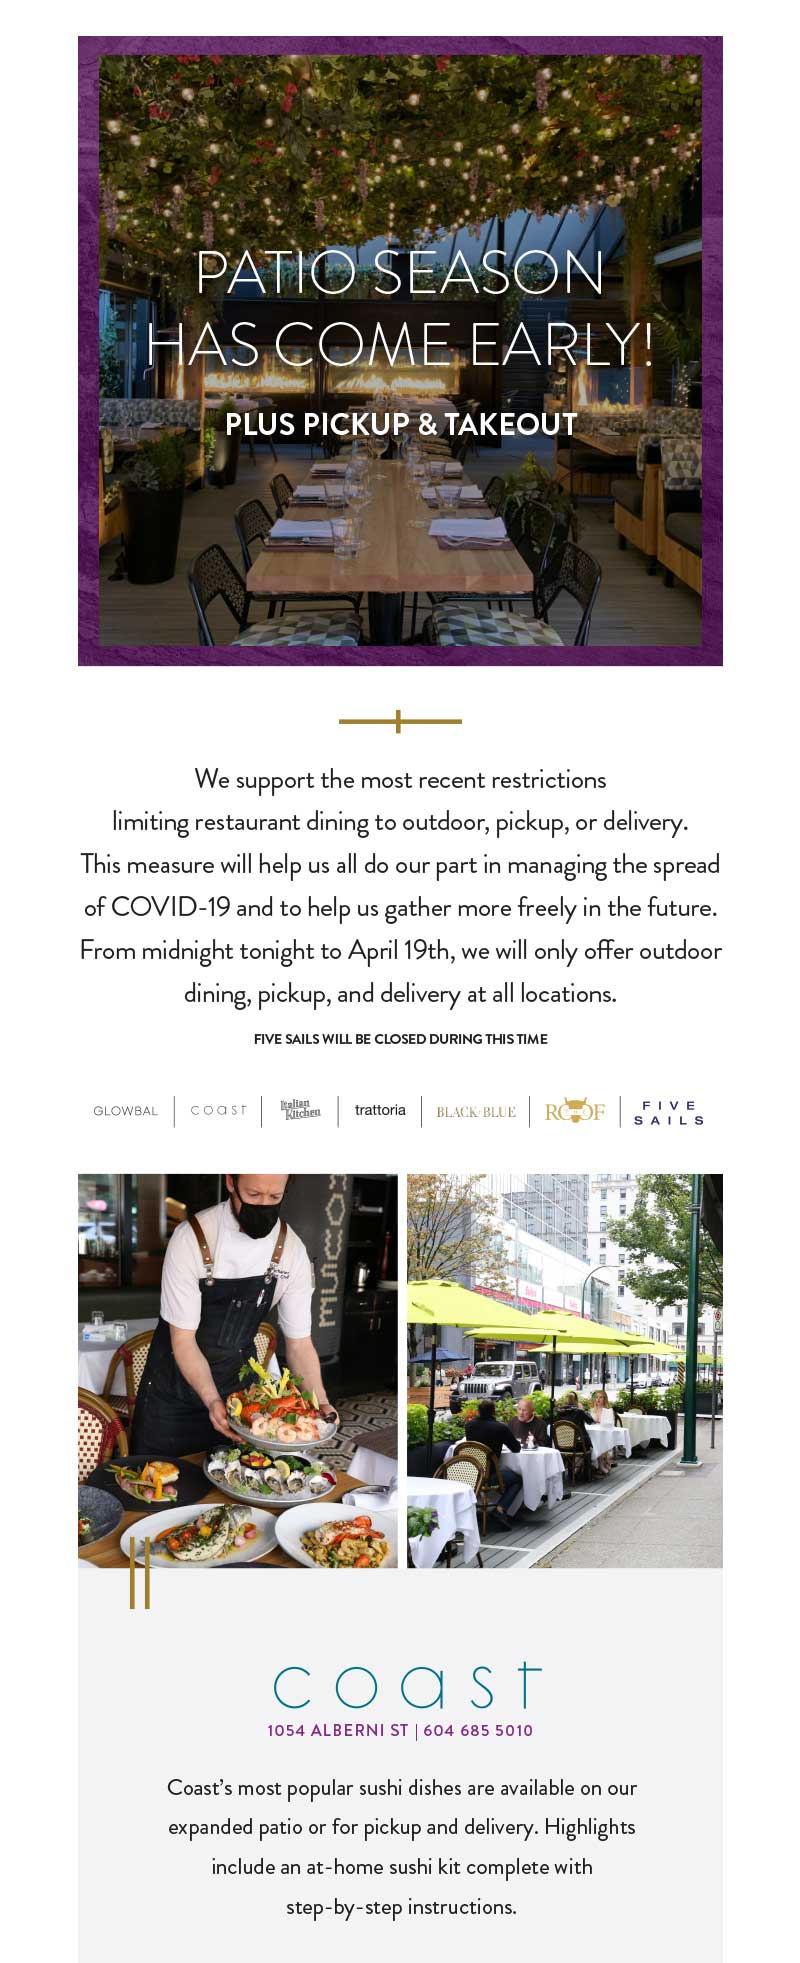 We support the most recent restrictions  limiting restaurant dining to outdoor, pickup, or delivery.  This measure will help us all do our part in managing the spread of COVID-19 and to help us gather more freely in the future.  From midnight tonight to April 19th, we will only offer outdoor dining, pickup, and delivery at all locations.